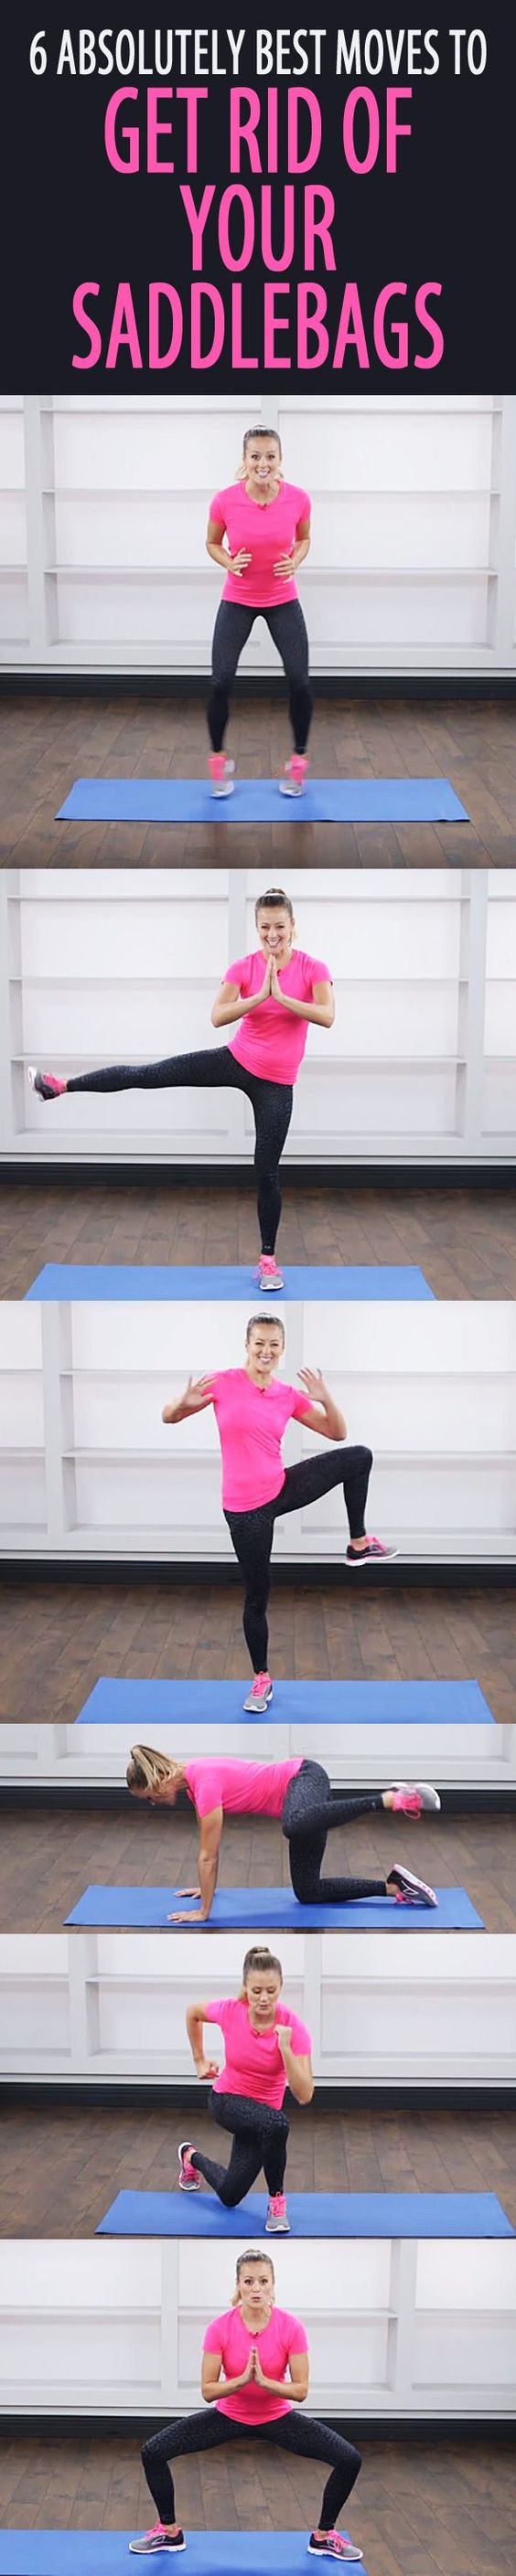 Press play and get ready to say adios to your saddlebags!   #saddlebags #thighworkout #buttworkout